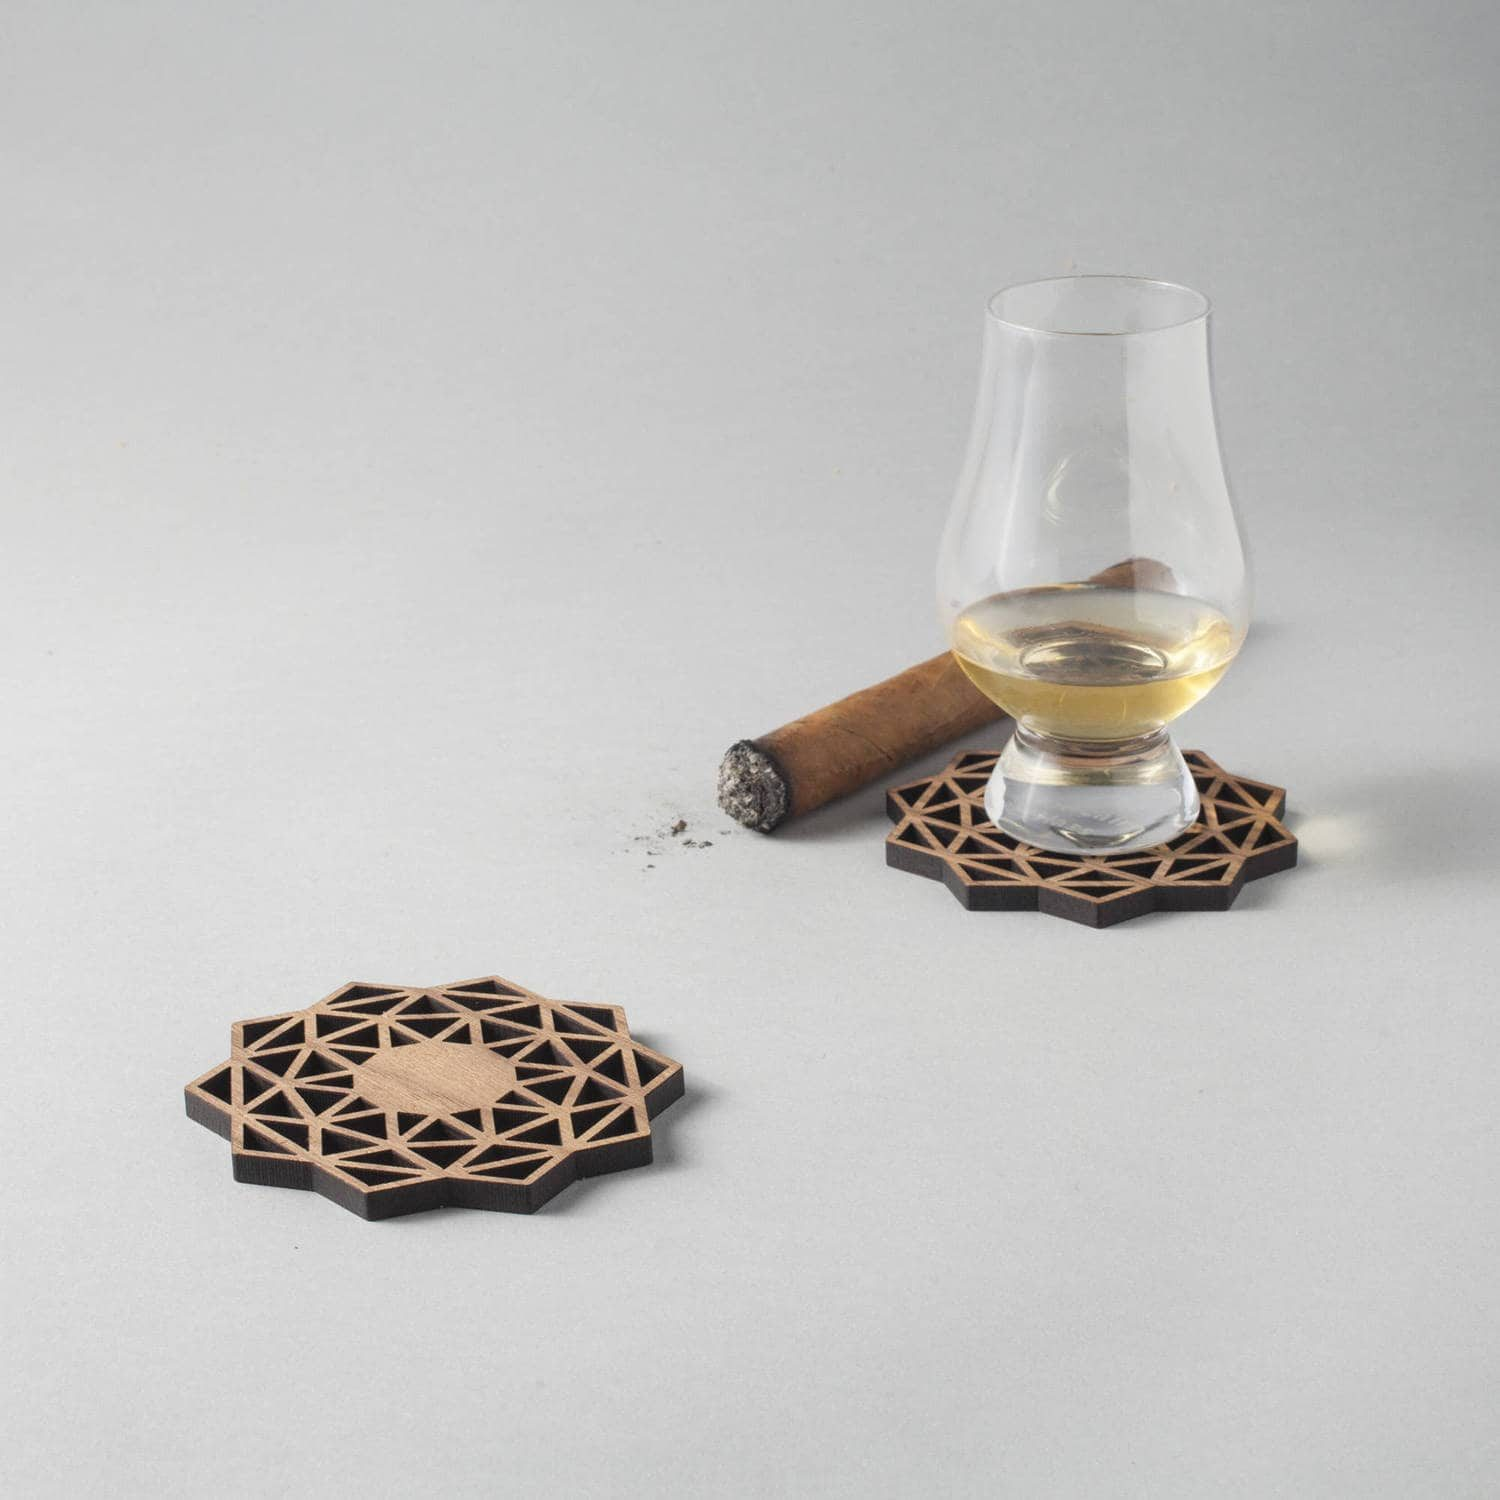 Whisky (simple) walnut drinks coasters, geometric